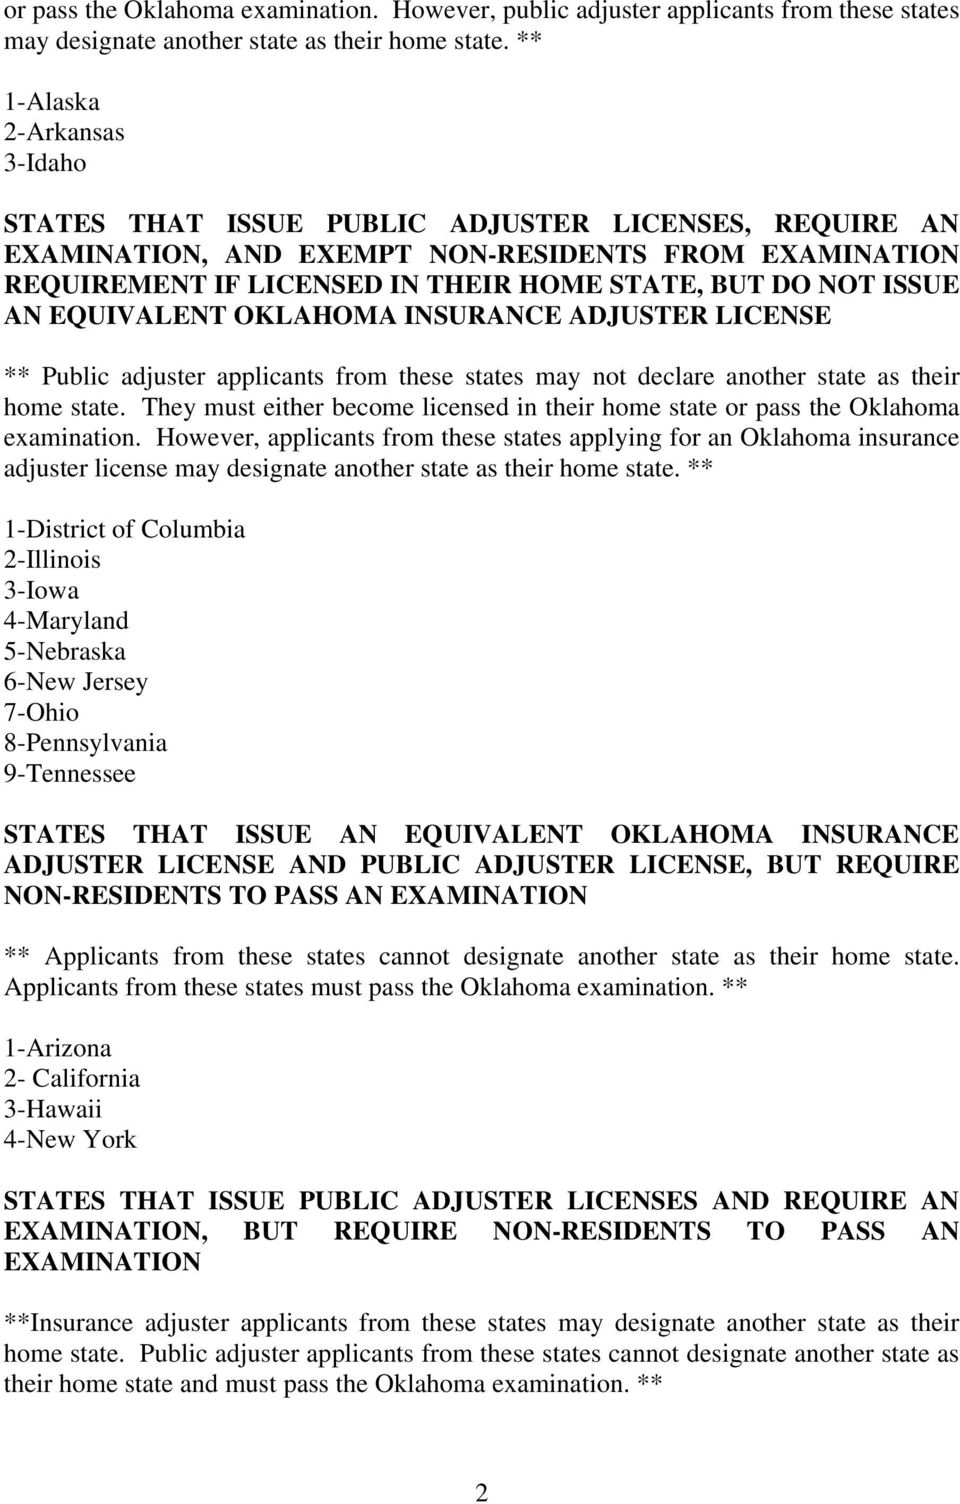 ISSUE AN EQUIVALENT OKLAHOMA INSURANCE ADJUSTER LICENSE ** Public adjuster applicants from these states may not declare another state as their home state.